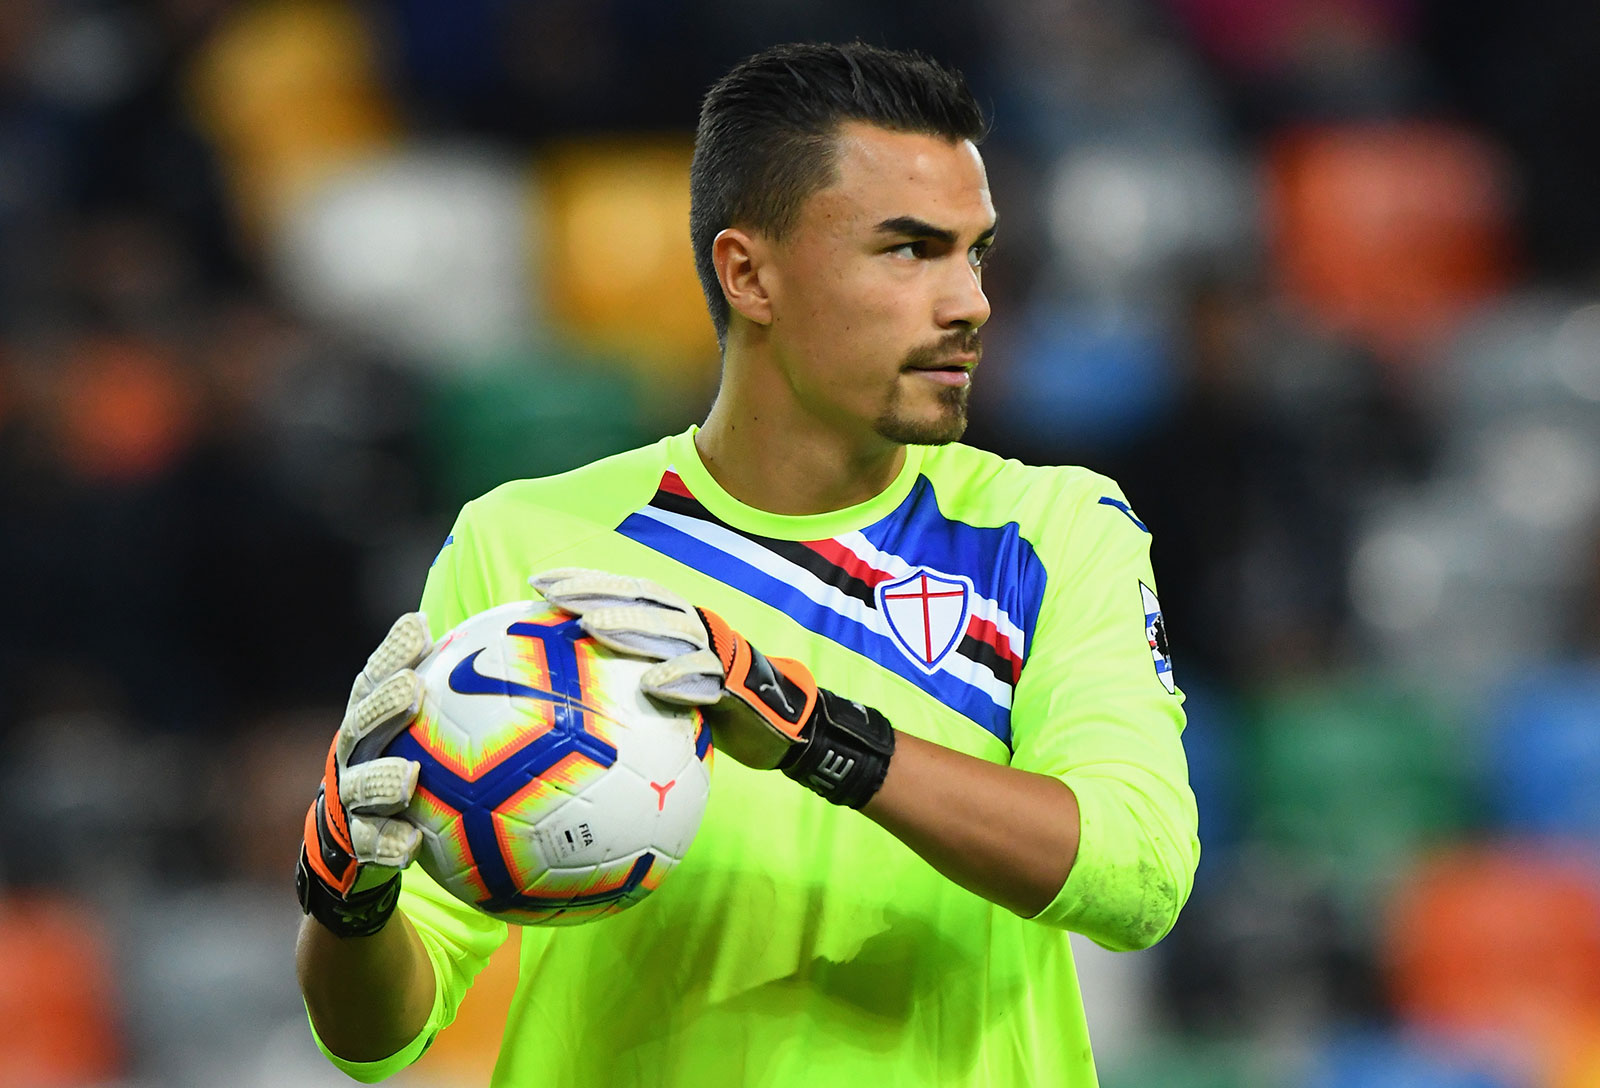 Emil Audero during Udinese-Sampdoria at Stadio Friuli on August 26, 2018. (Photo by Alessandro Sabattini/Getty Images)